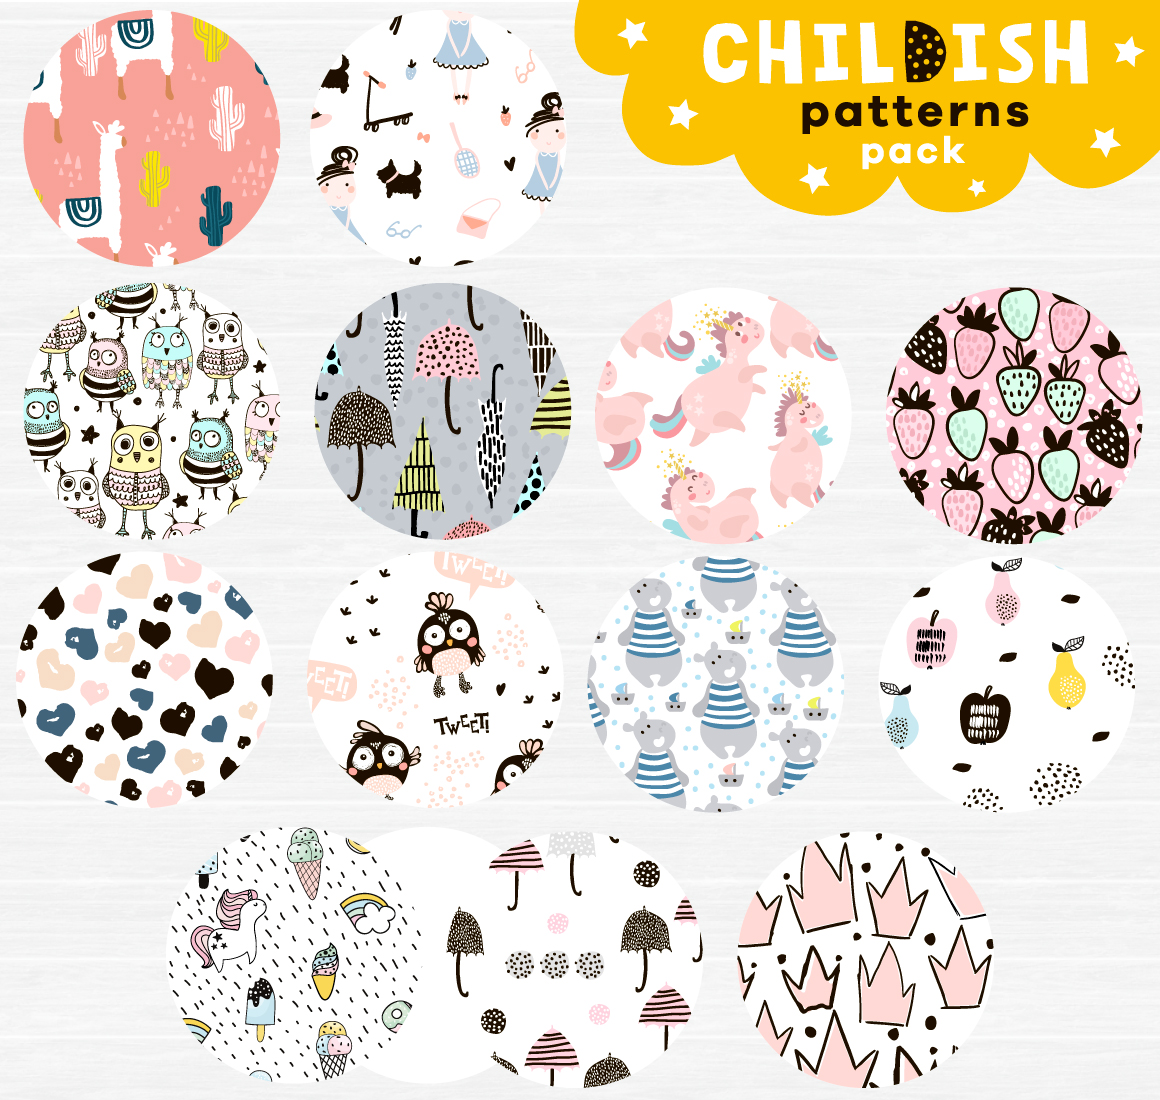 Childish patterns pack vol. 2 example image 4